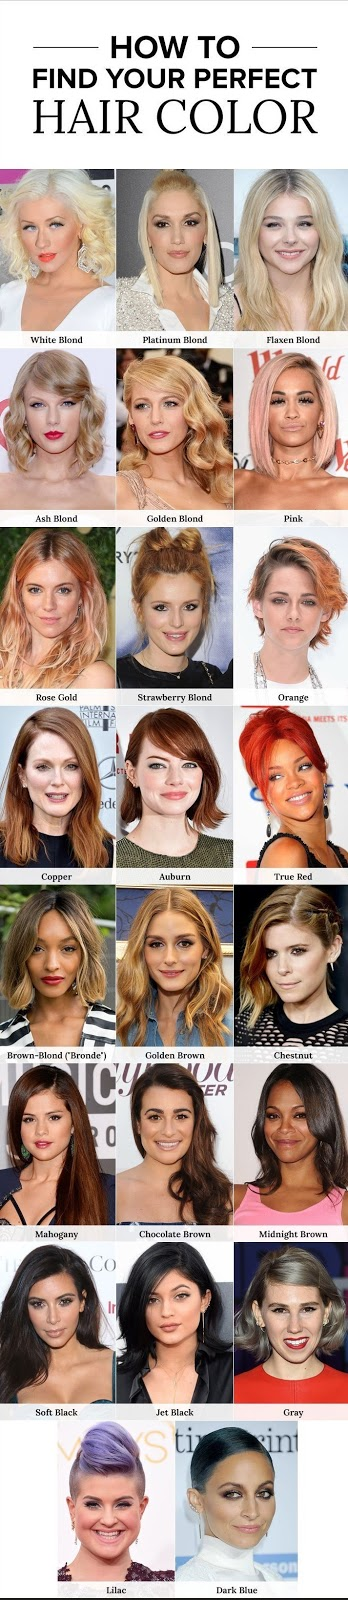 how to find perfect hair colors